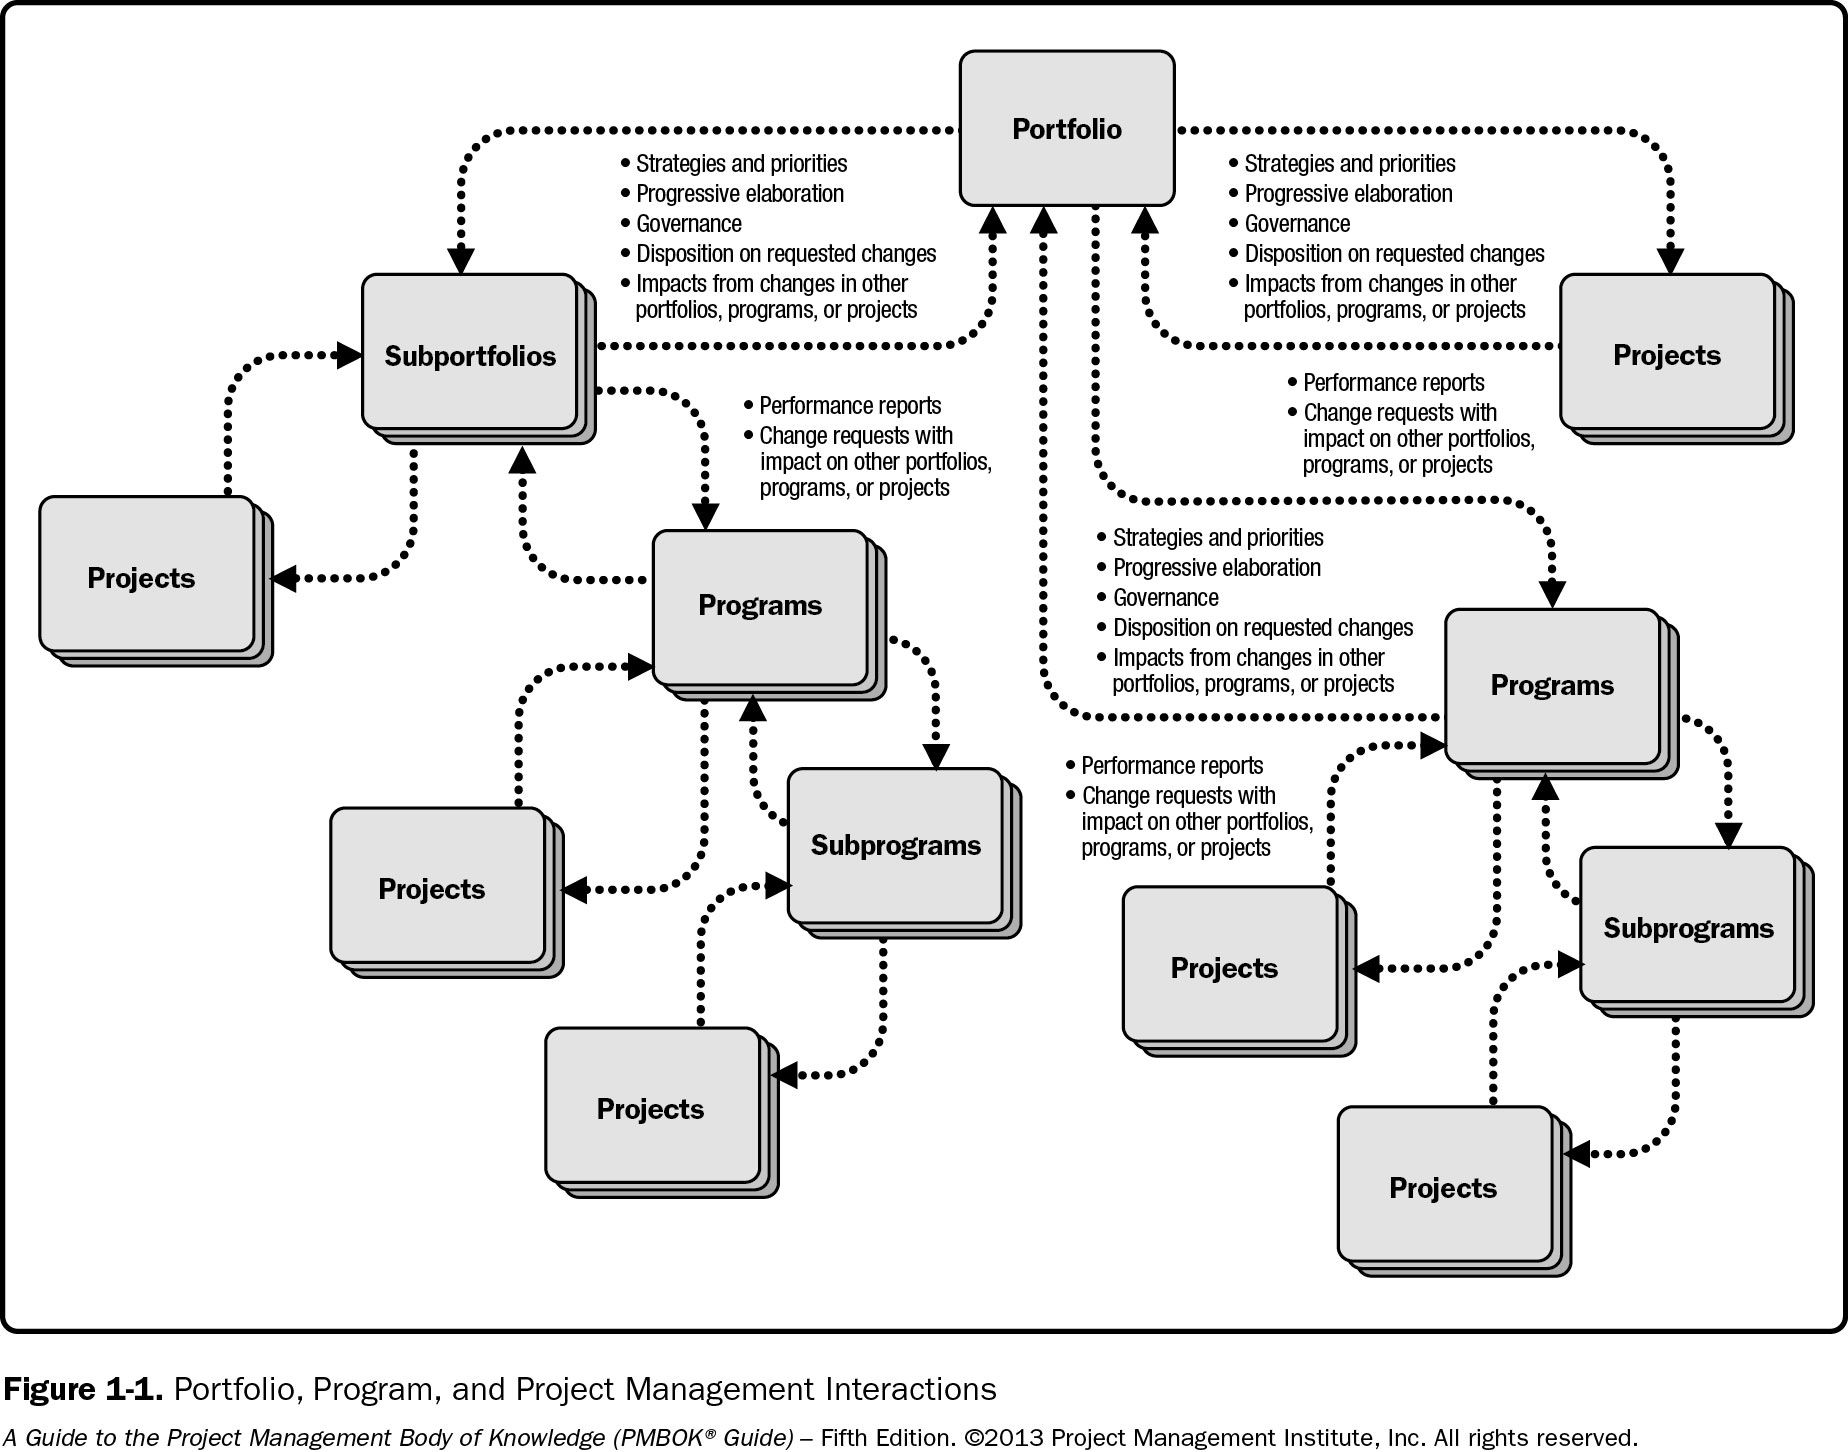 Diagram: Projects and Programs in Relation to a Portfolio